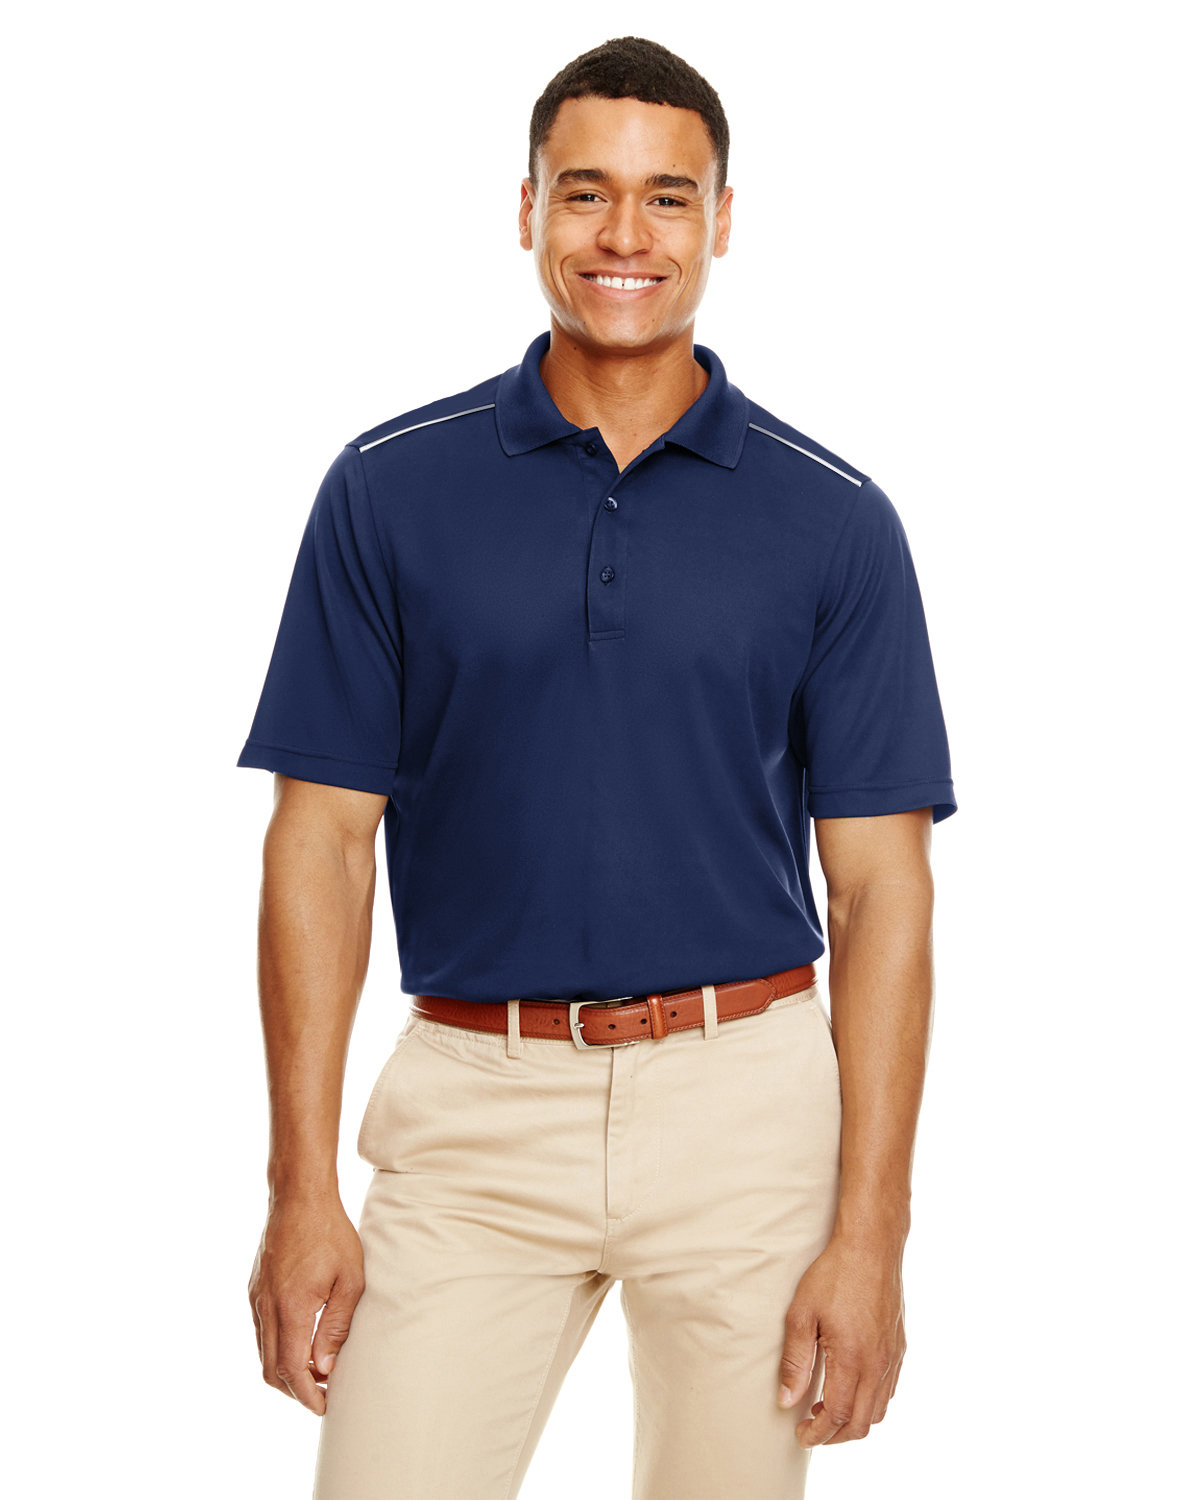 Core 365 Men's Radiant Performance Piqué Polo withReflective Piping CLASSIC NAVY